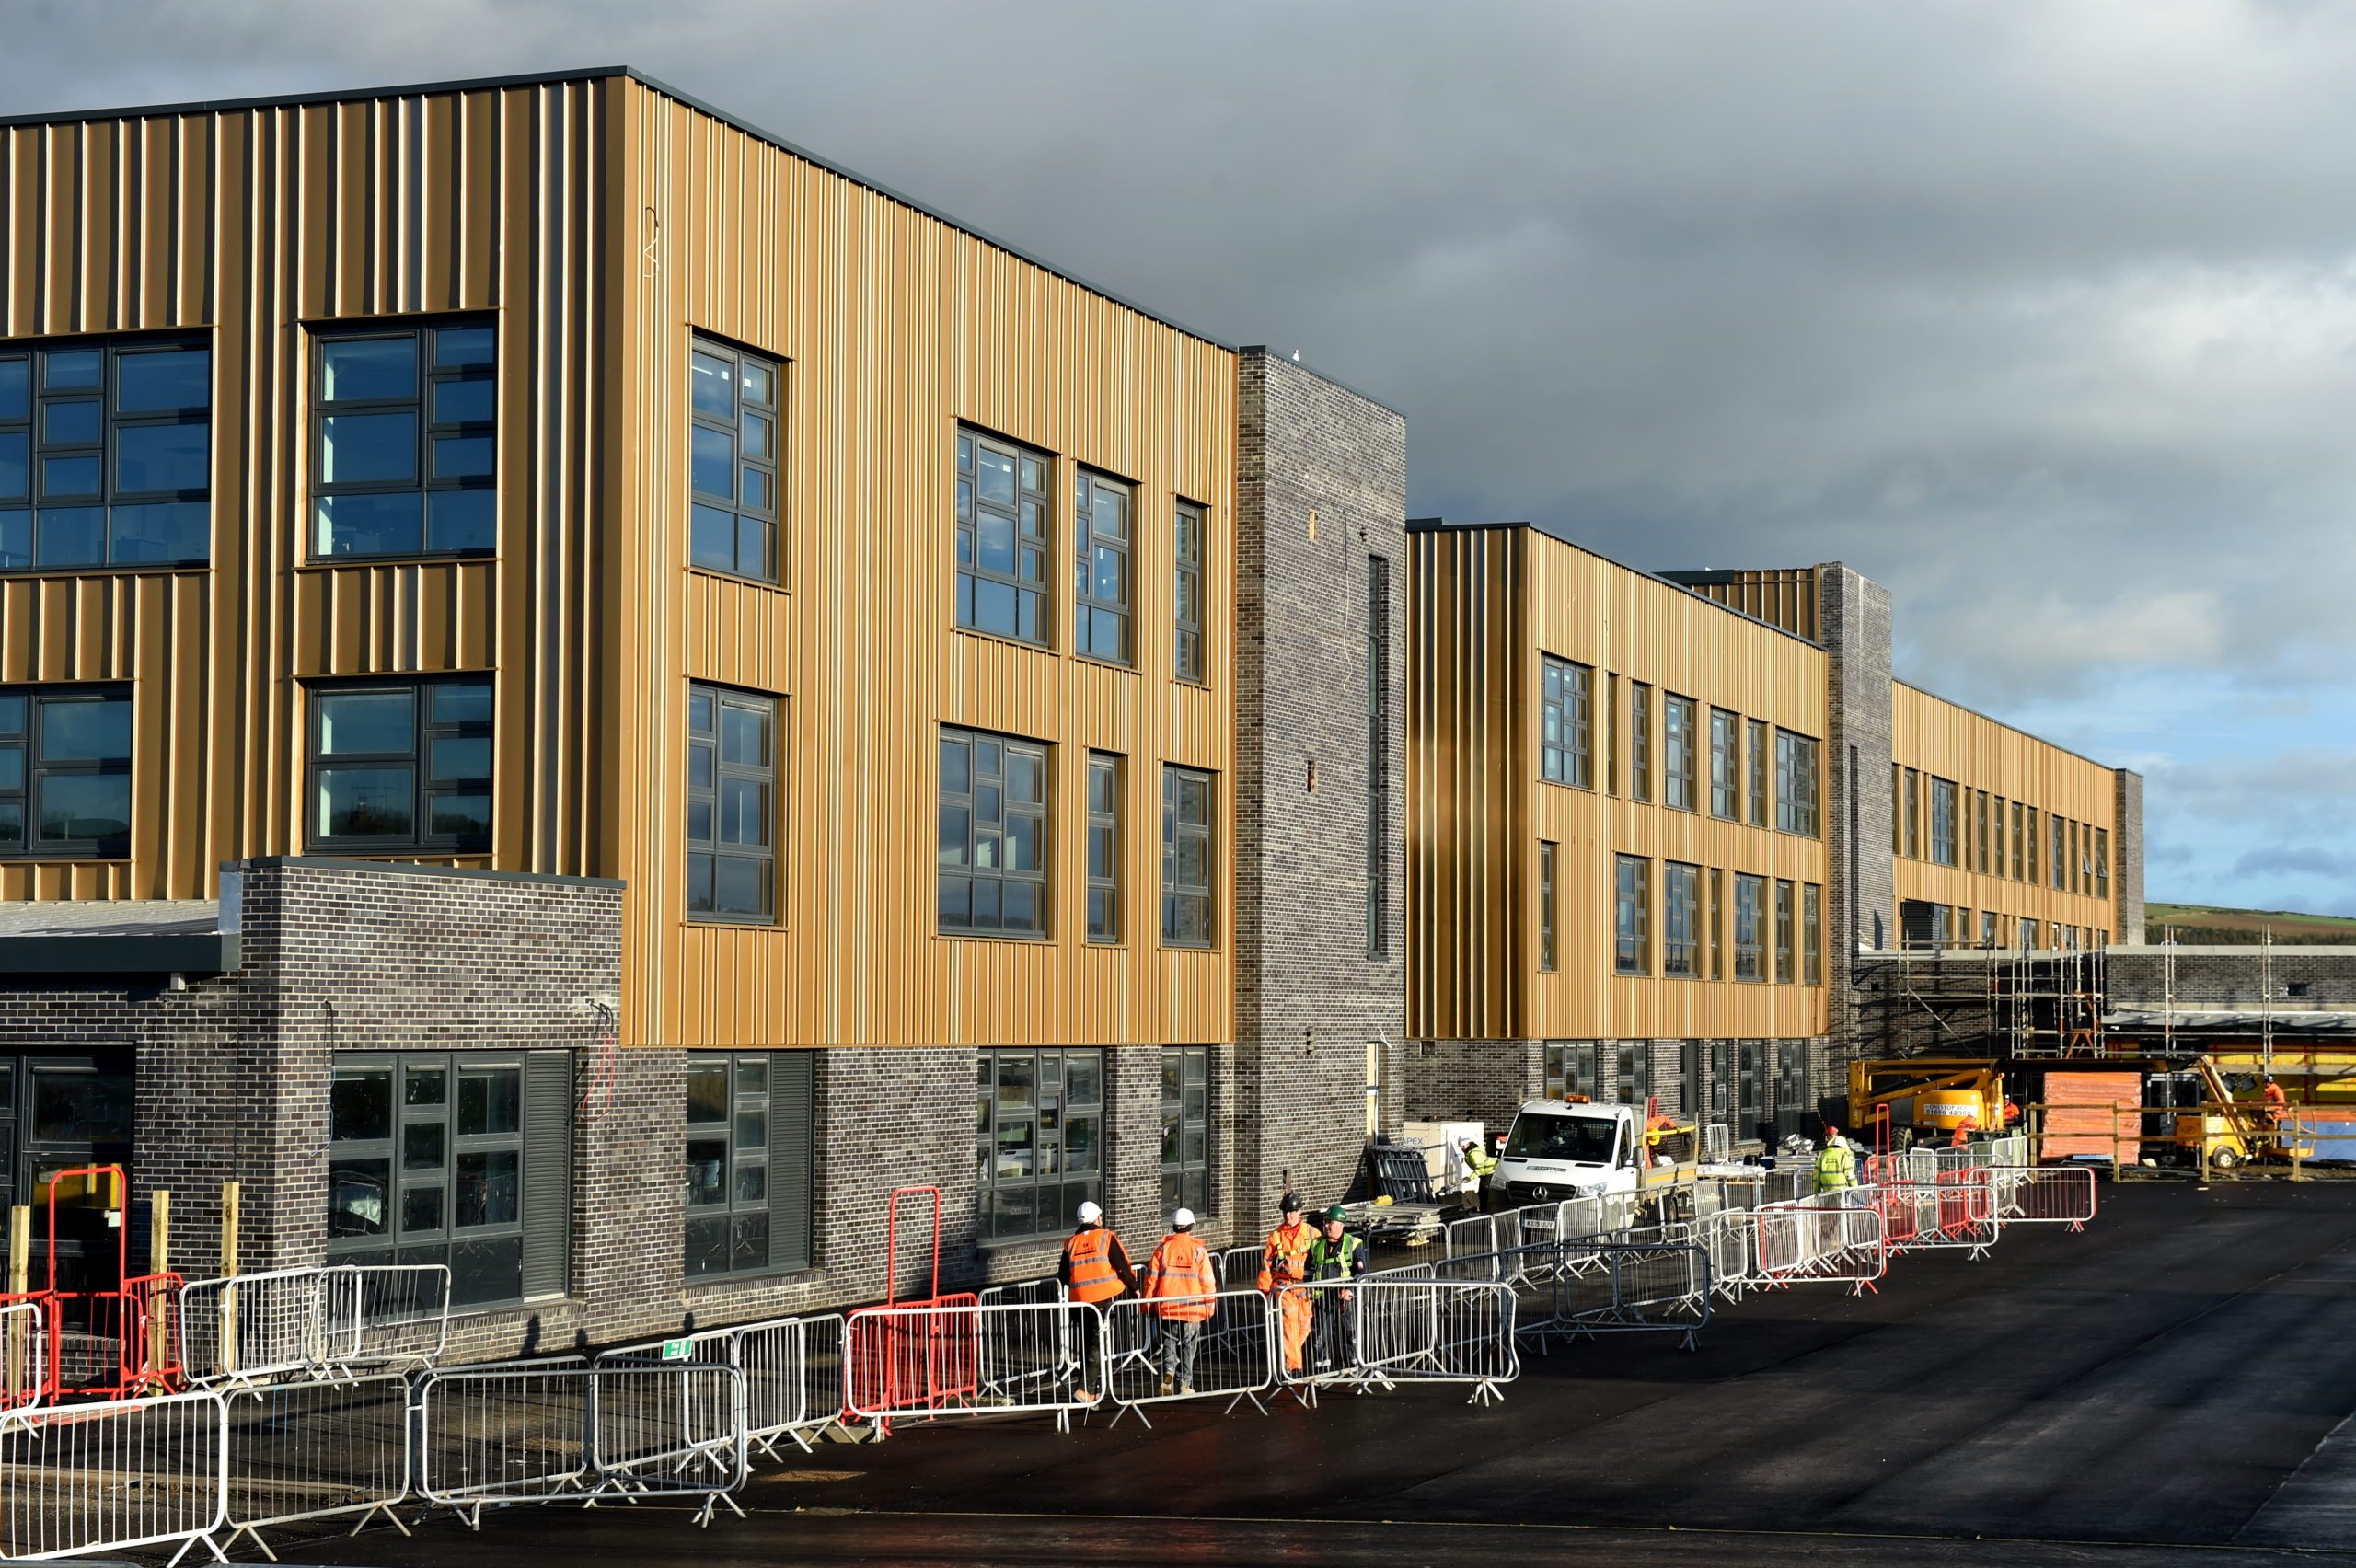 The new Inverurie Community Campus was due to open in time for next school term